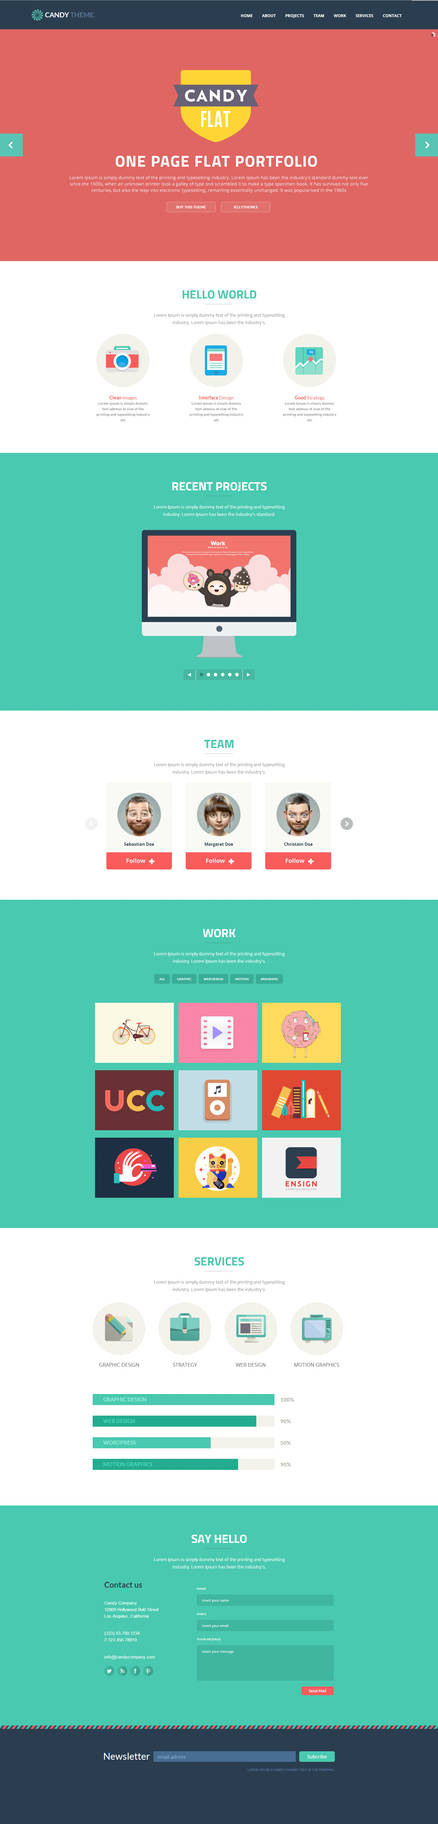 Candy - Flat Onepage Responsive HTML5 Template by DarkStaLkeRR